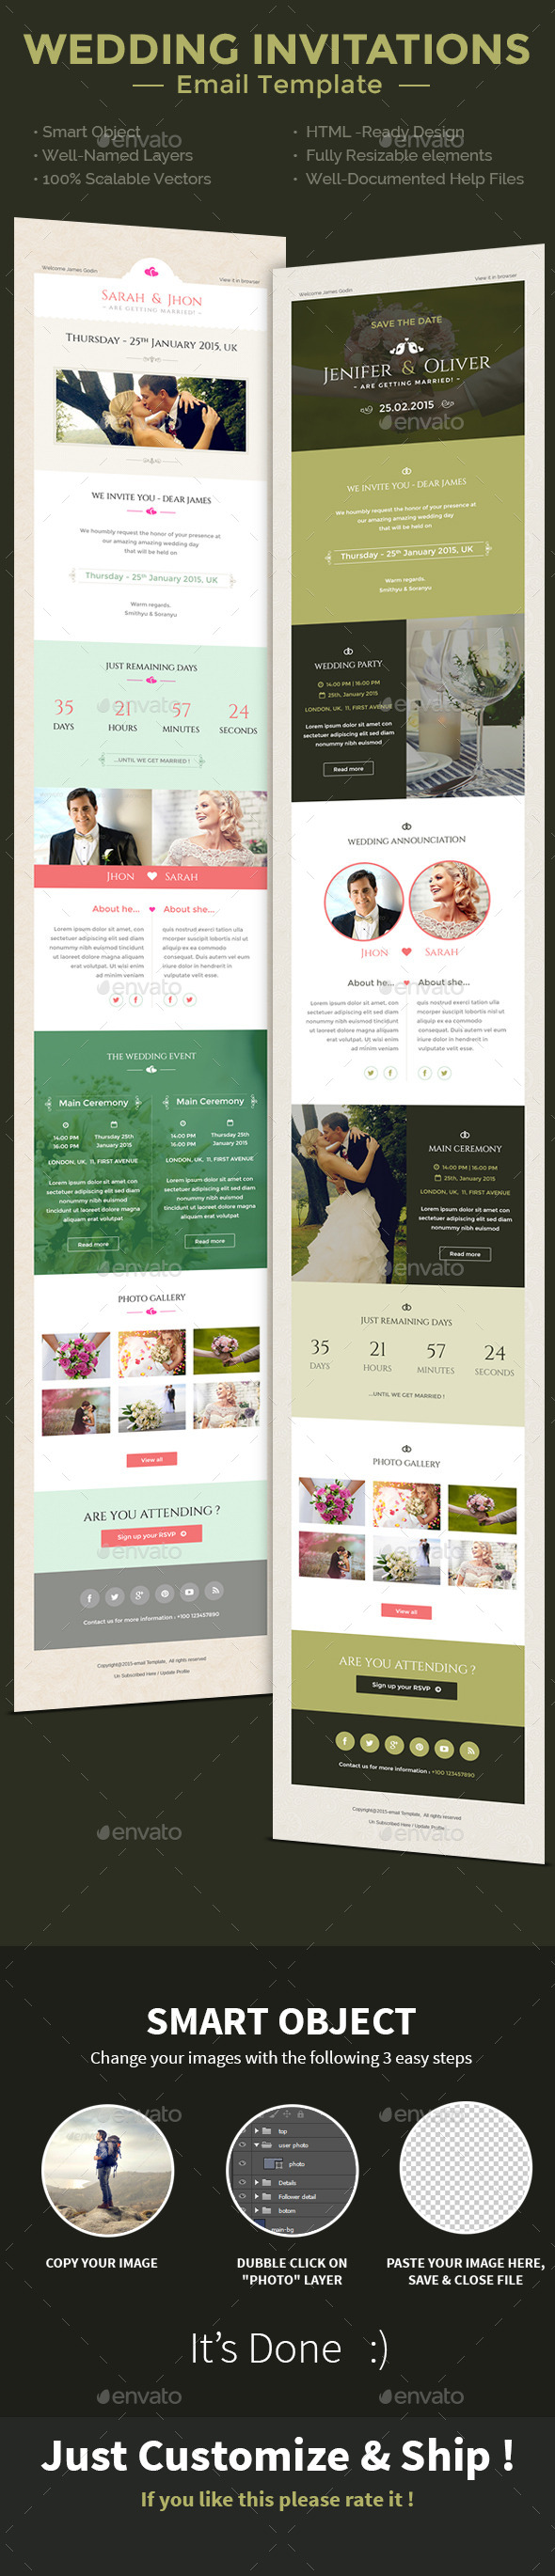 Wedding Invitation PSD Email Templates - E-newsletters Web Elements